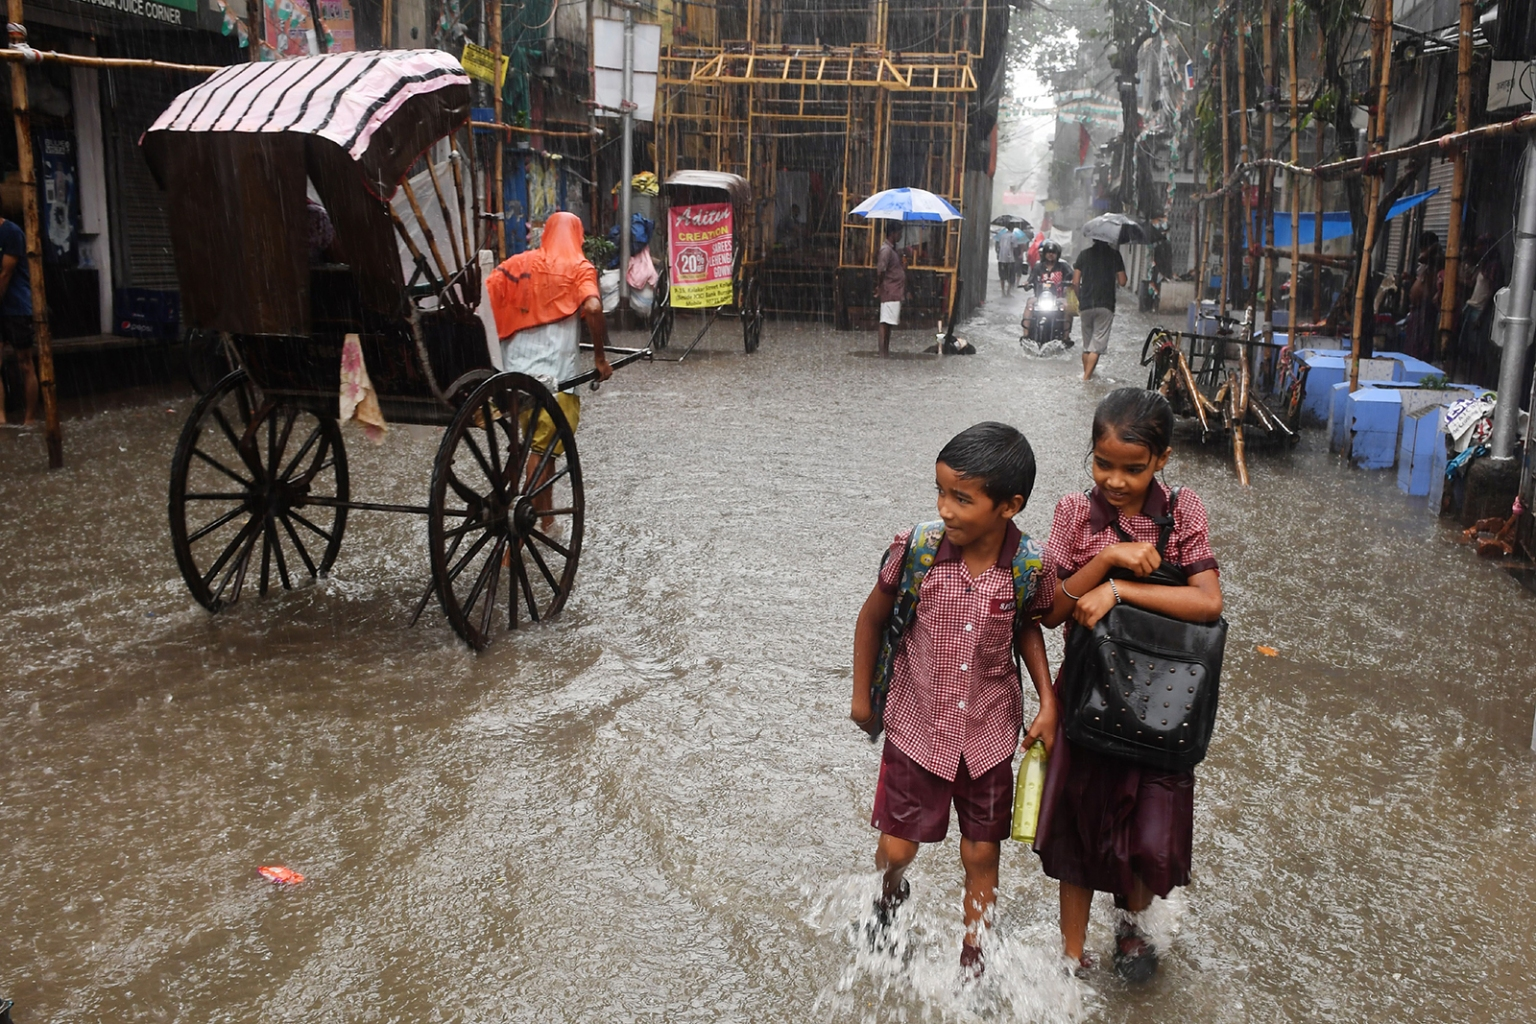 Indian schoolchildren walk through a waterlogged road during heavy rain in Kolkata on Sept. 25. DIBYANGSHU SARKAR/AFP/Getty Images